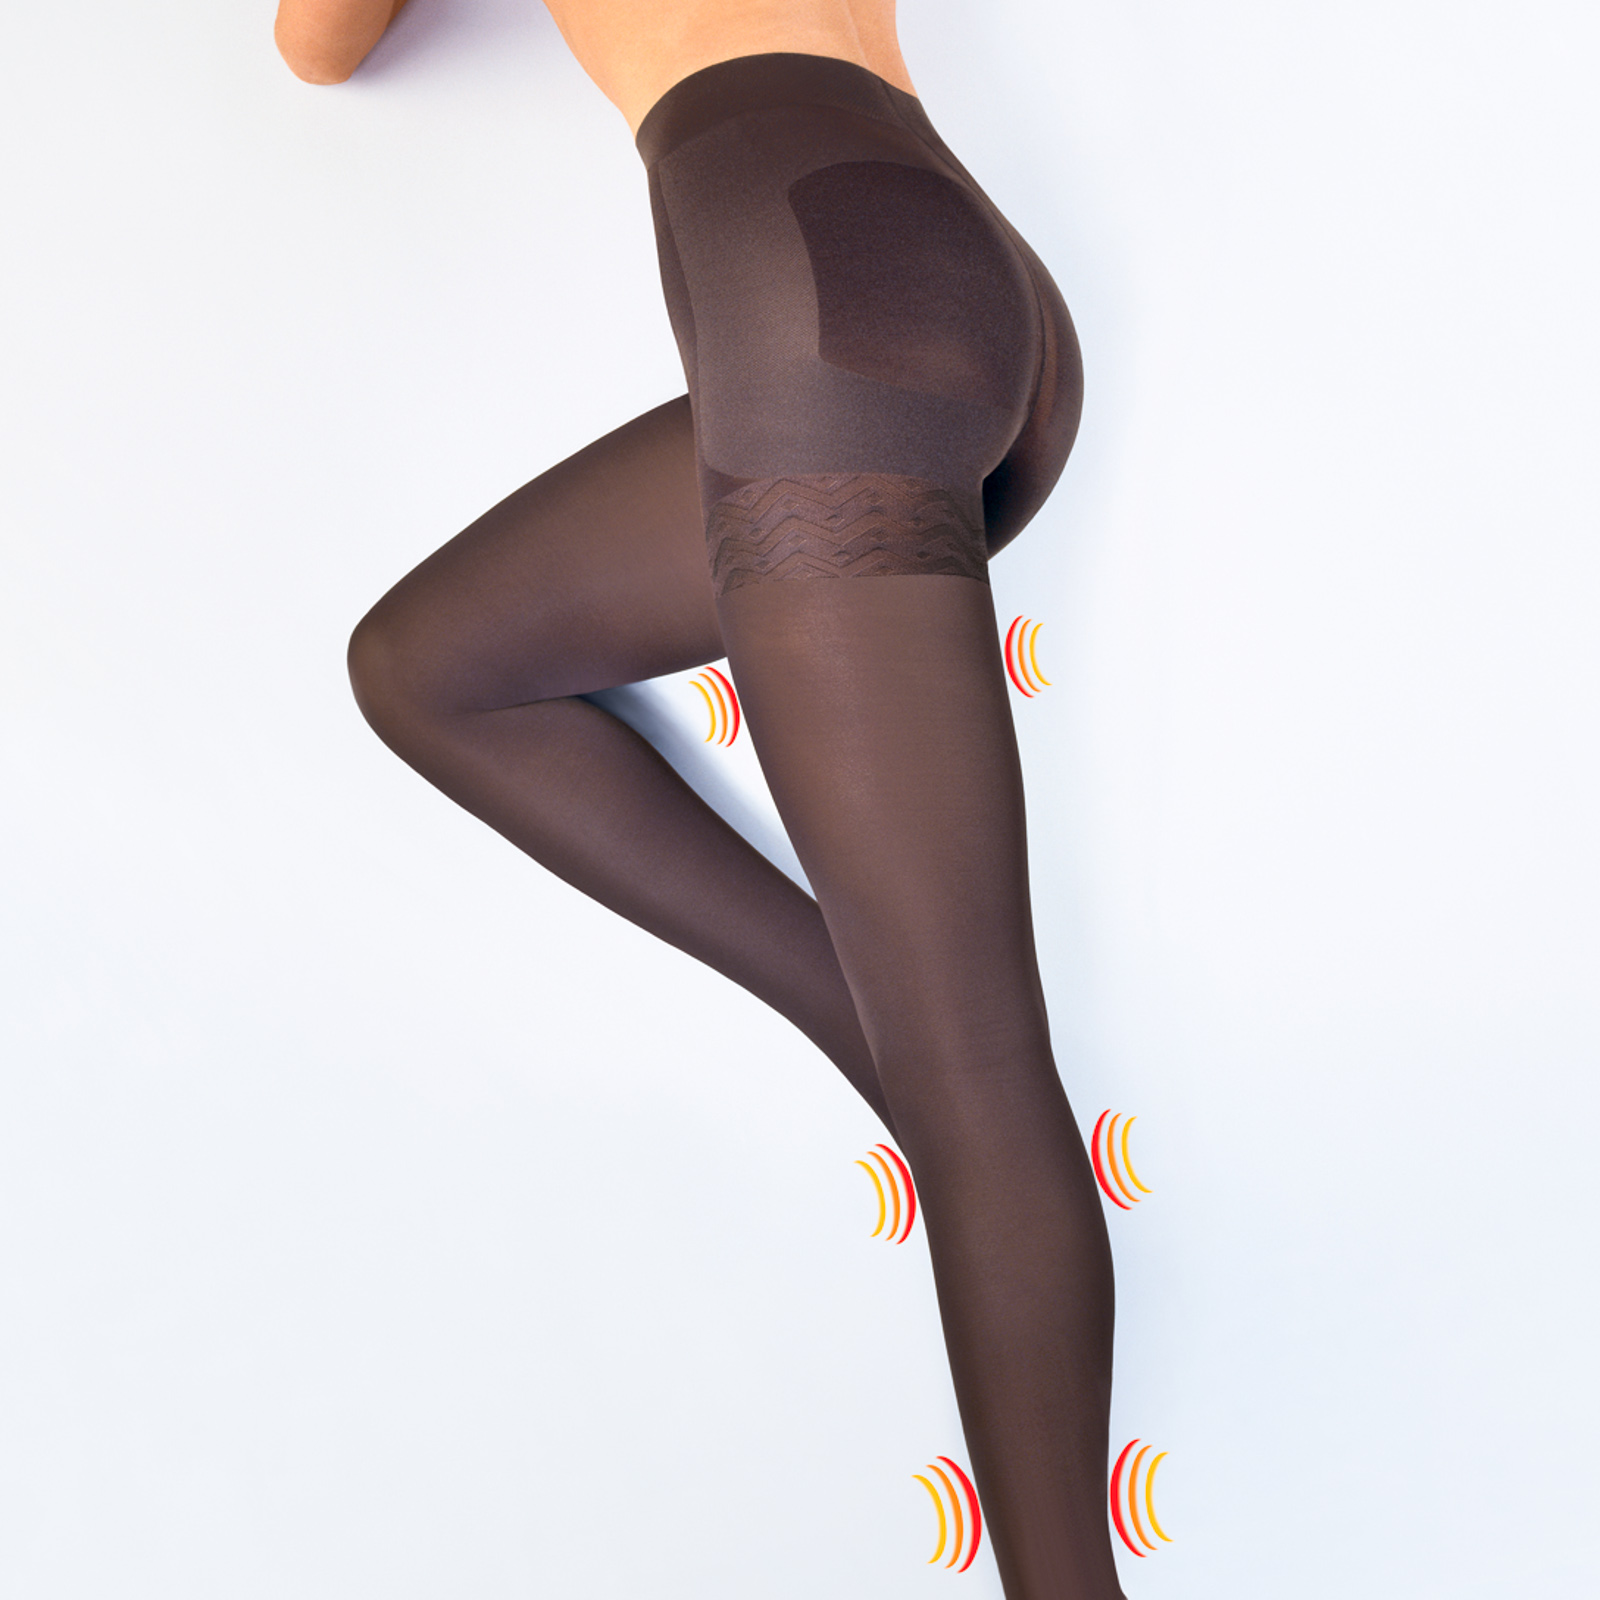 to-pantyhose-line-for-first-night-of-marriage-sex-videos